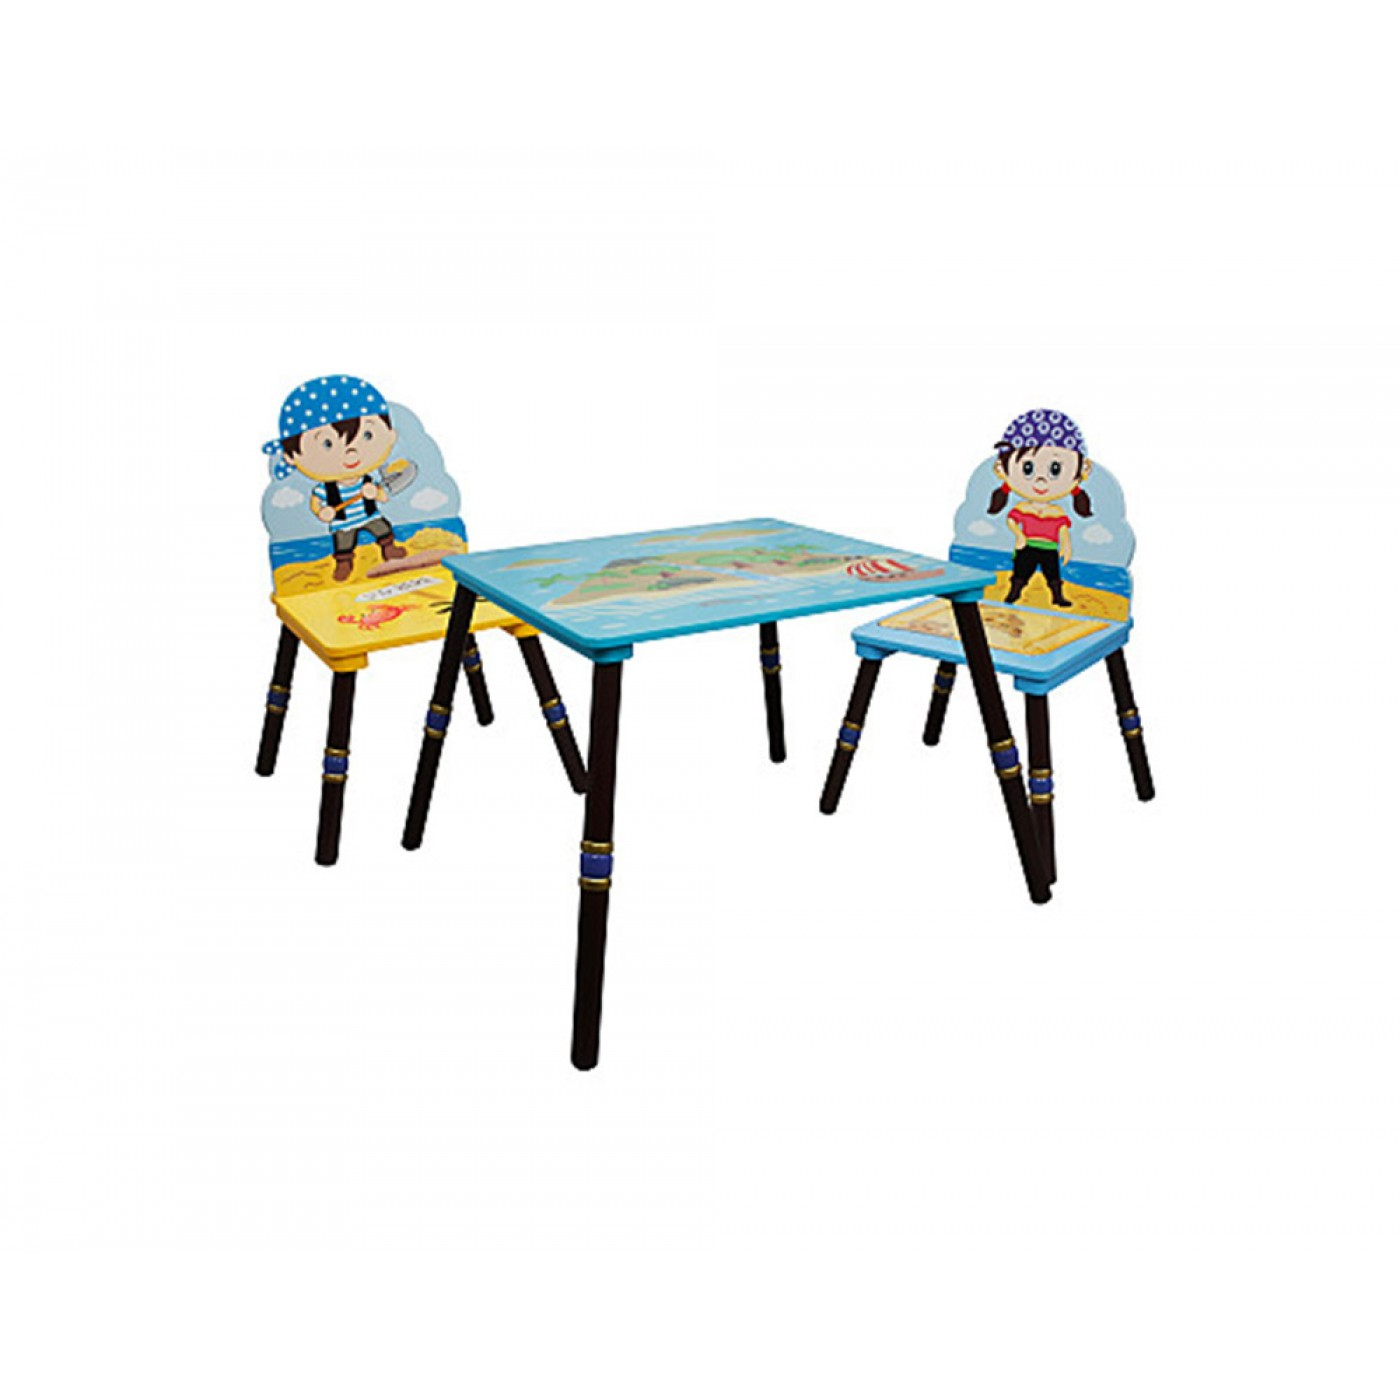 Fantasy Fields - Pirate Island Table & Set of 2 Chairs - B